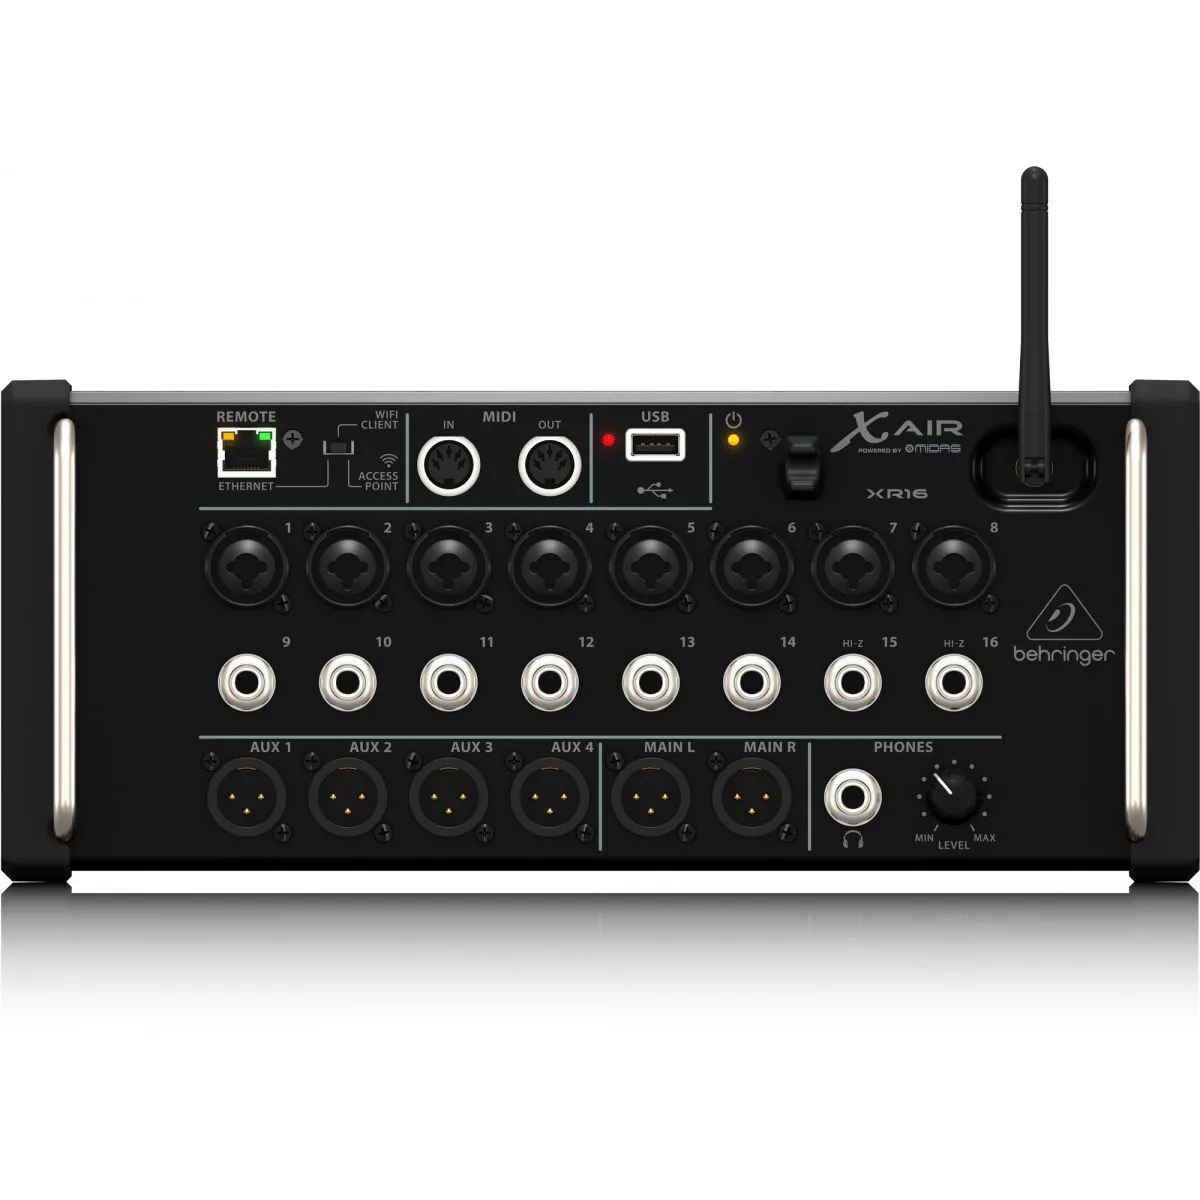 Mesa de Som Digital Behringer X Air XR16 USB 16 Canais